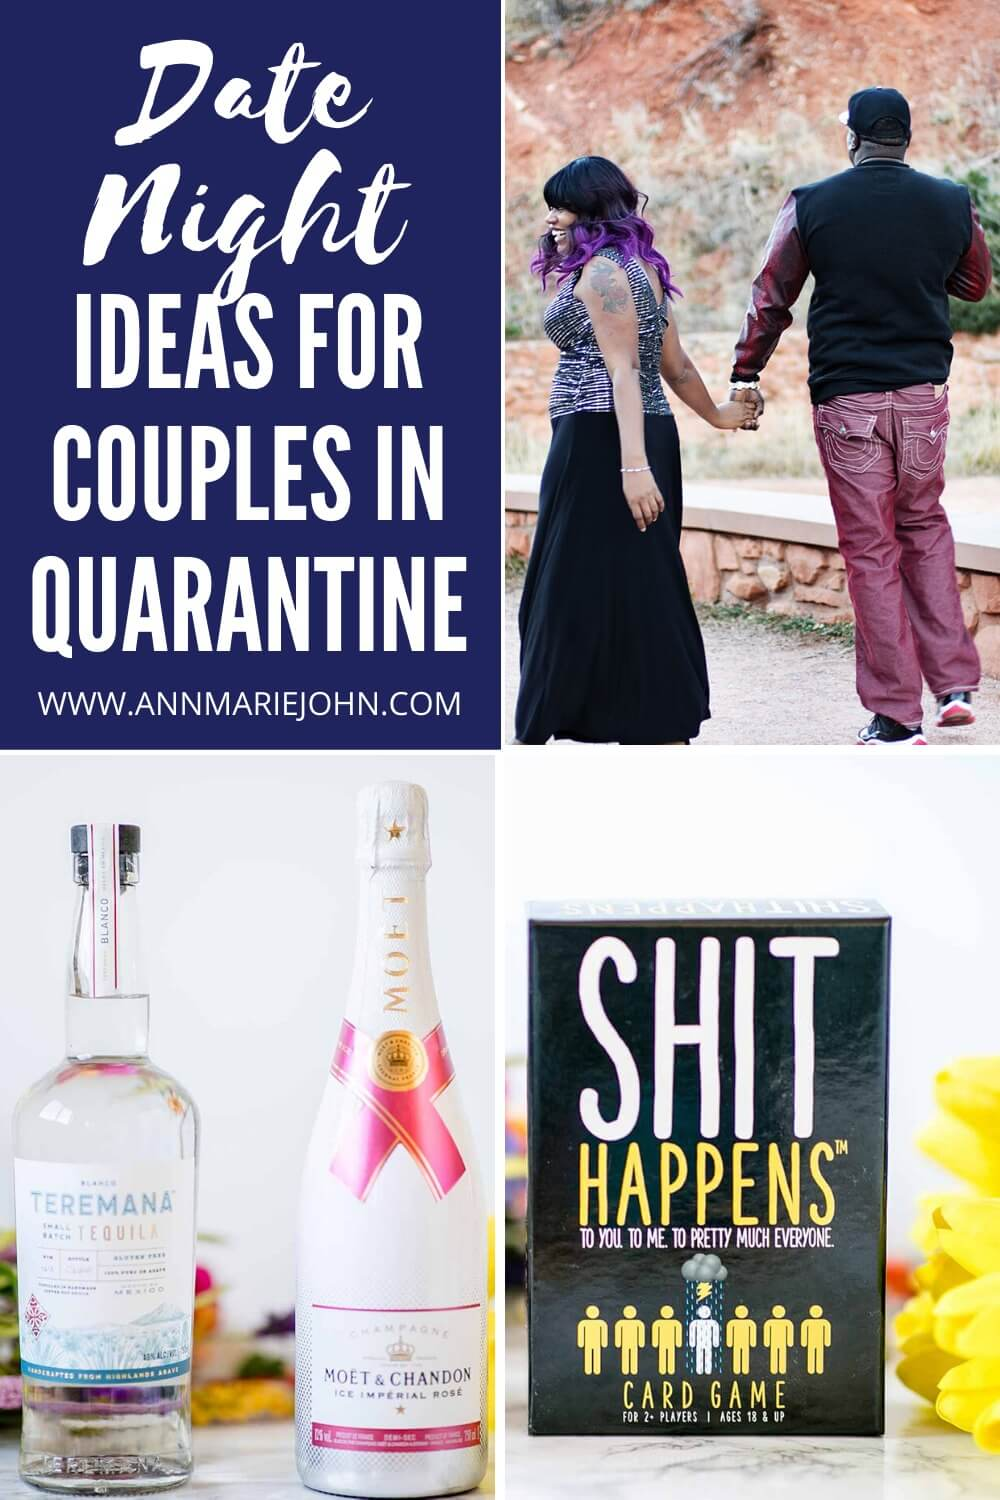 Date Night Ideas For Couples In Quarantine Pinterest Image